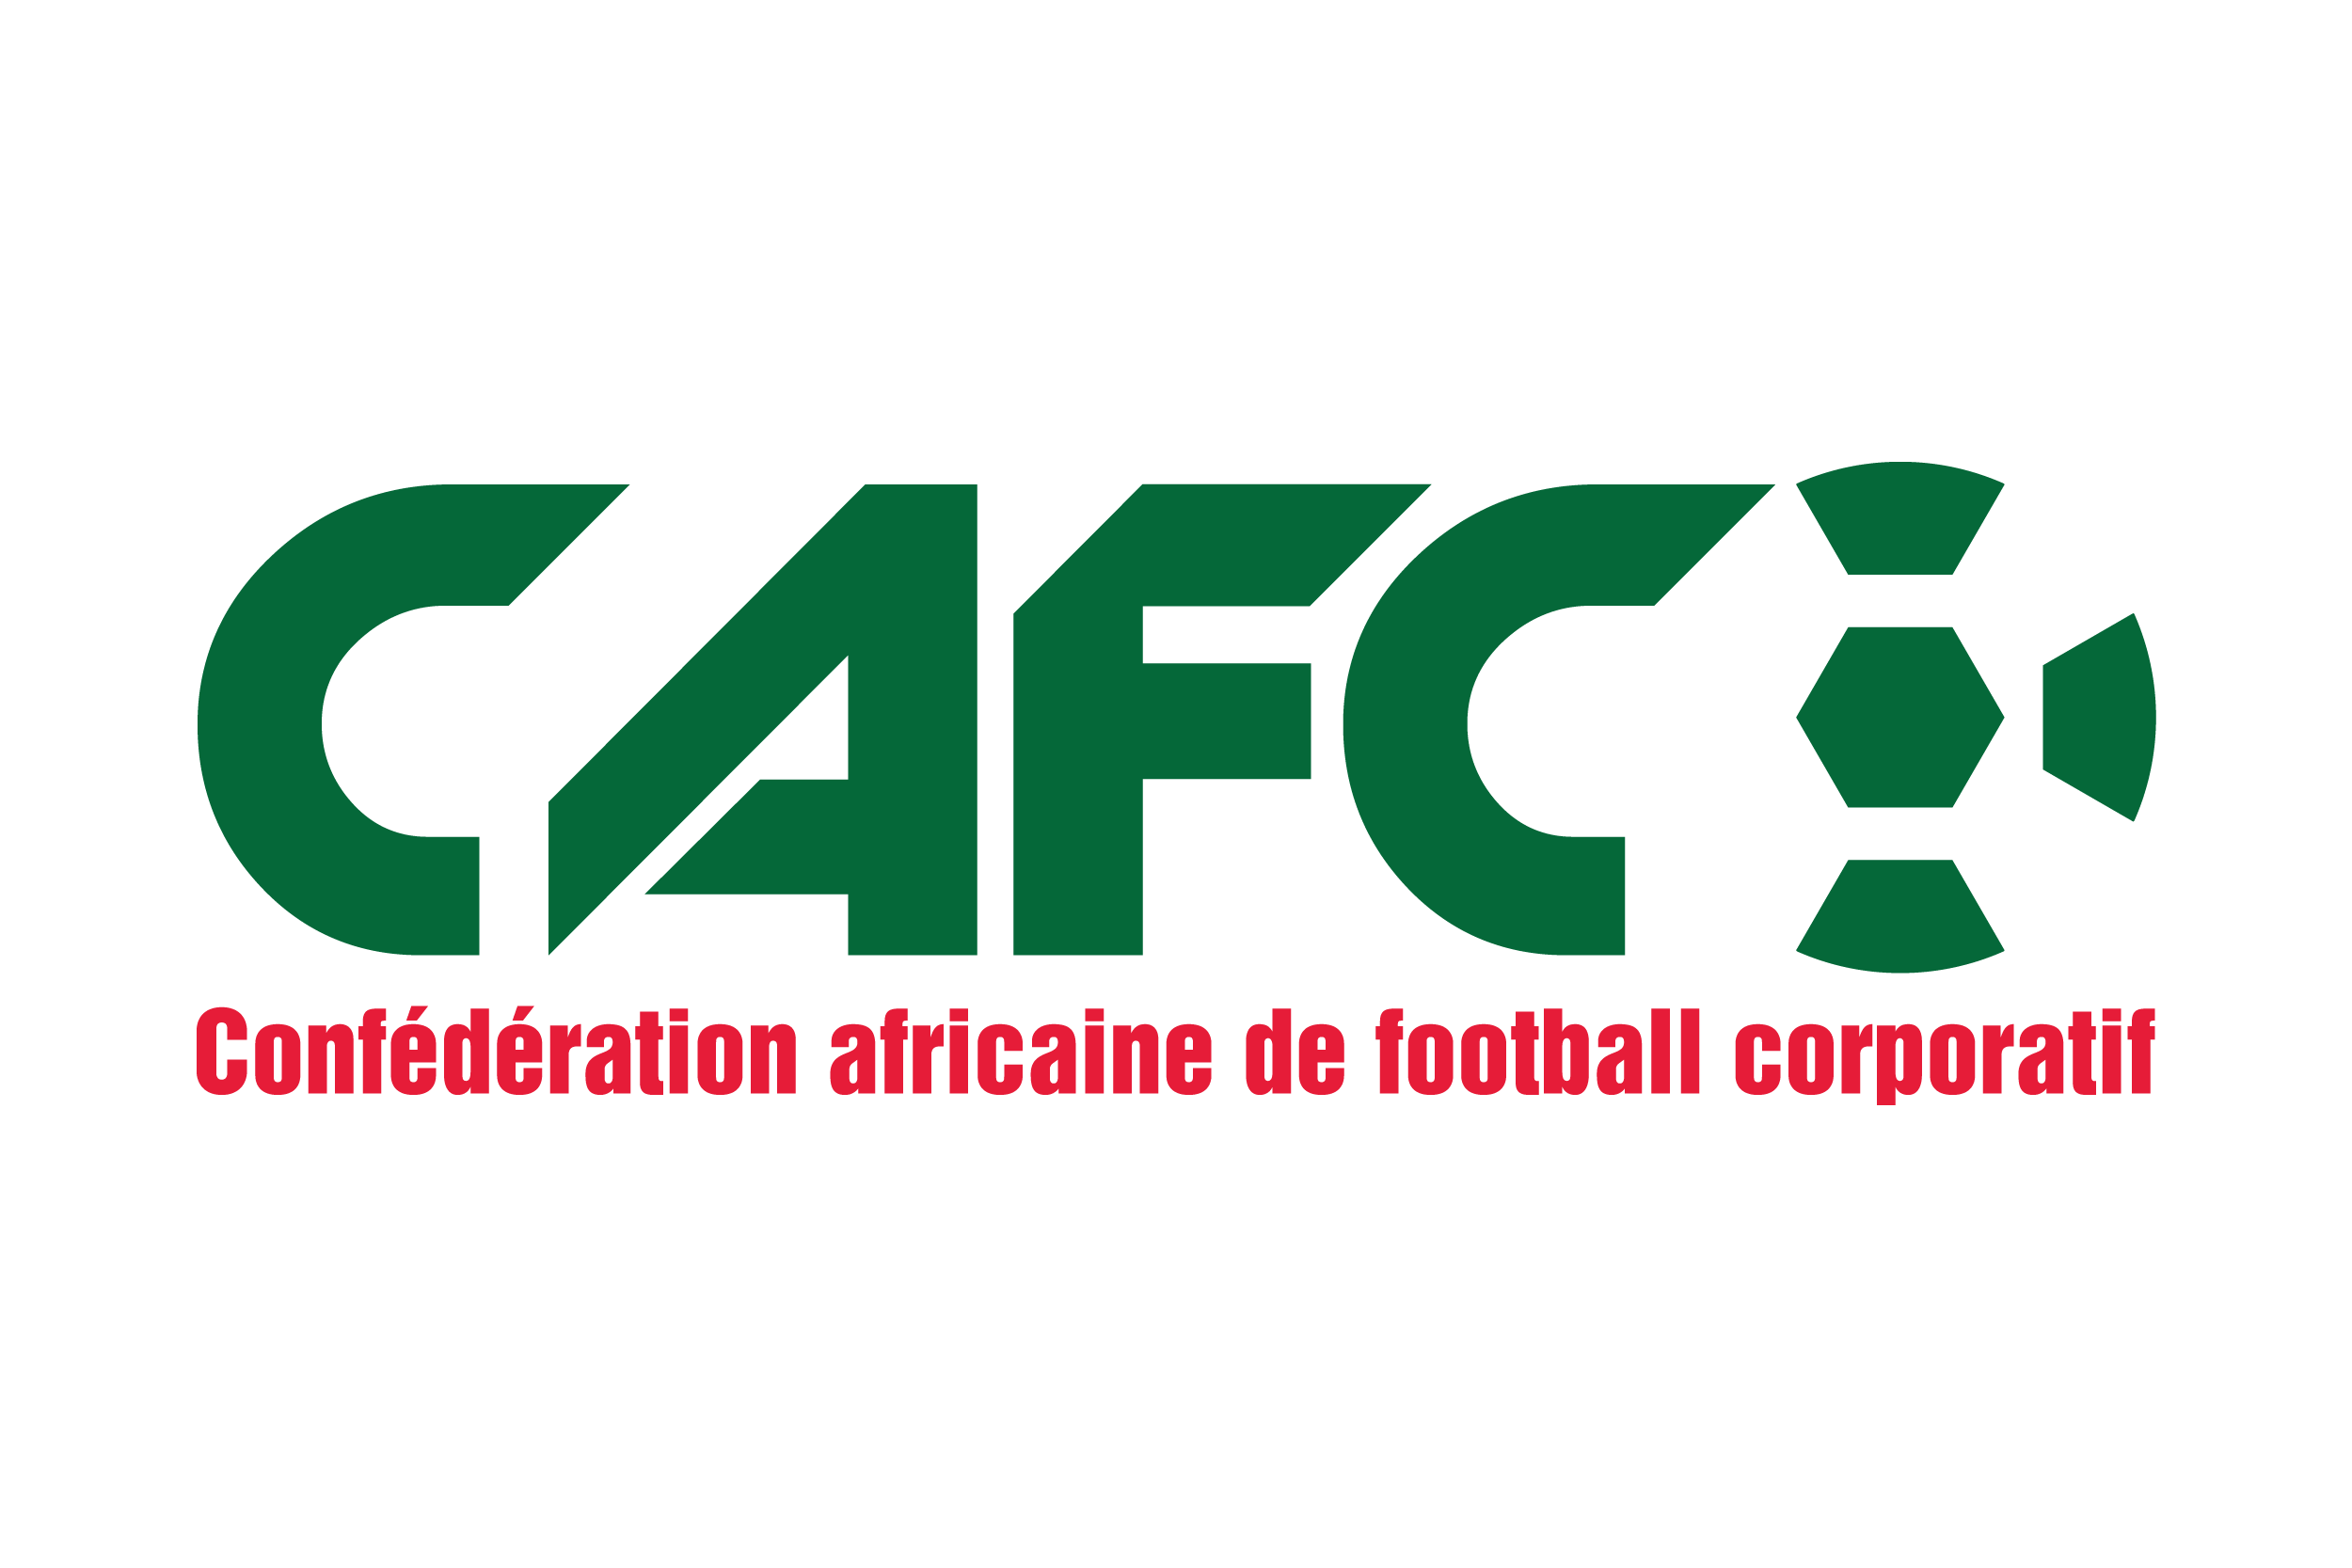 Confederation of African Corporate Football